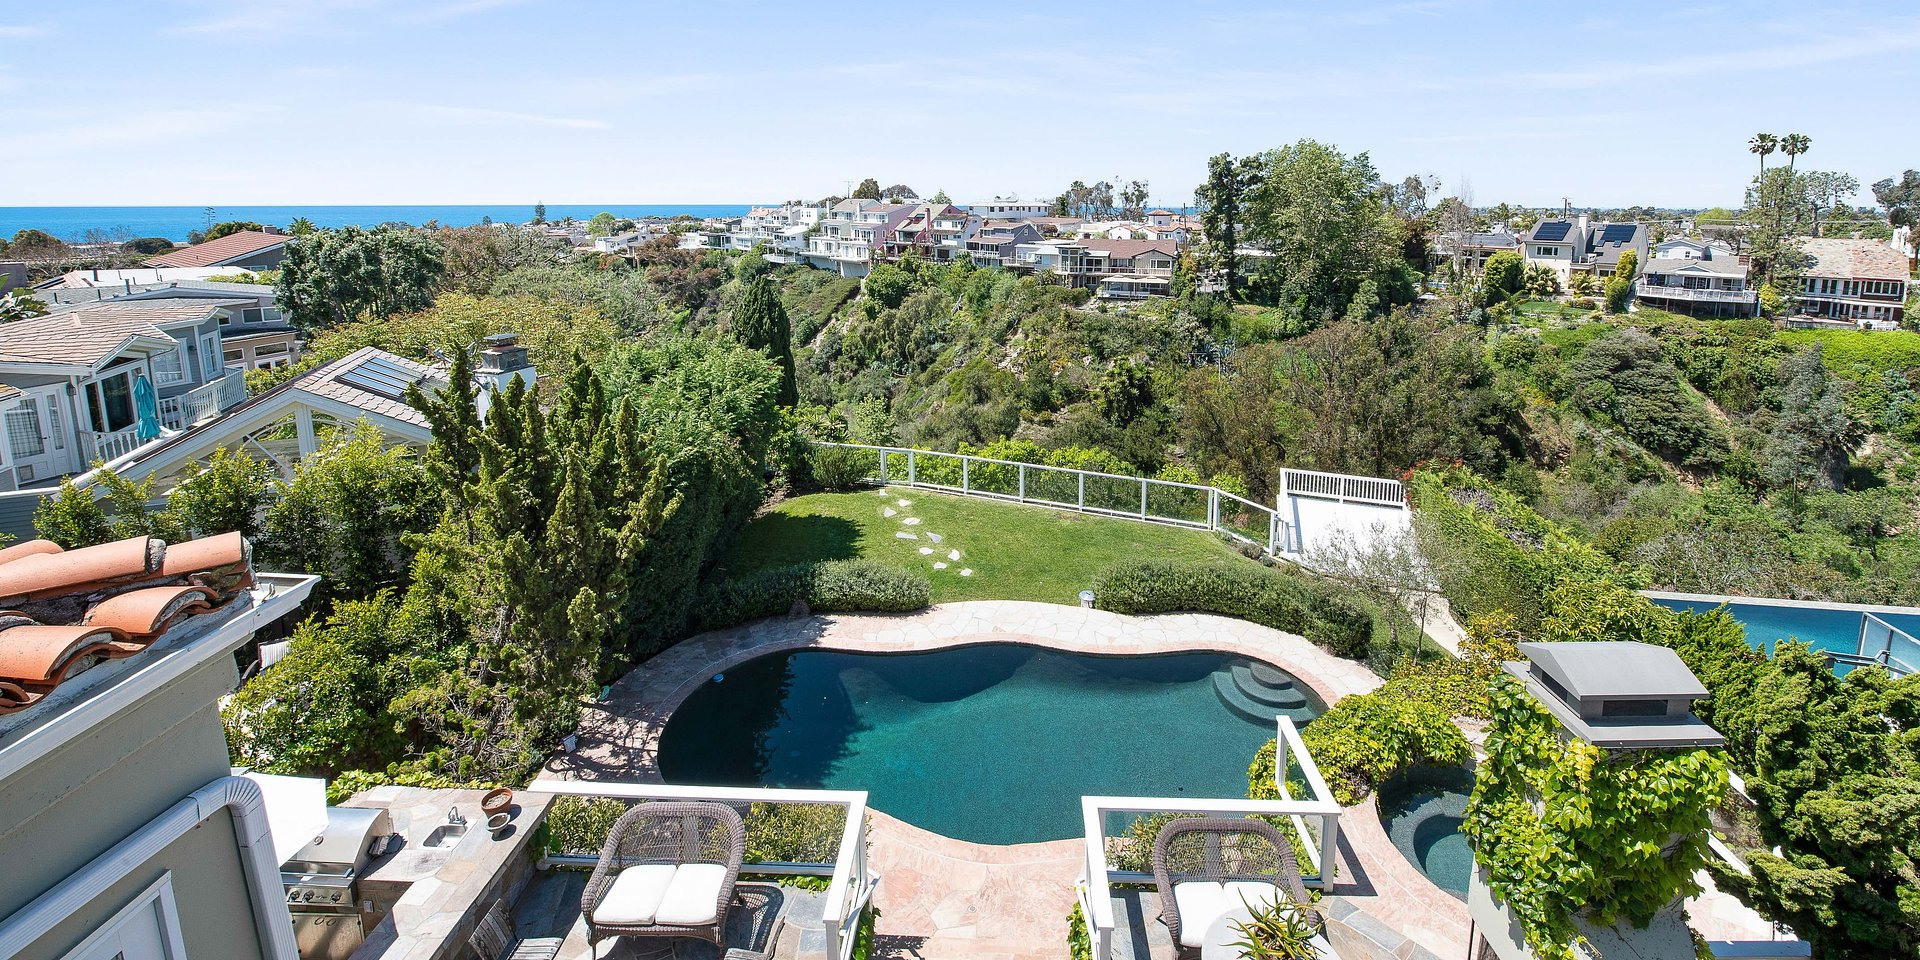 Coldwell Banker Realty Lists Corona del Mar Property with Ocean Views for $6.195 Million